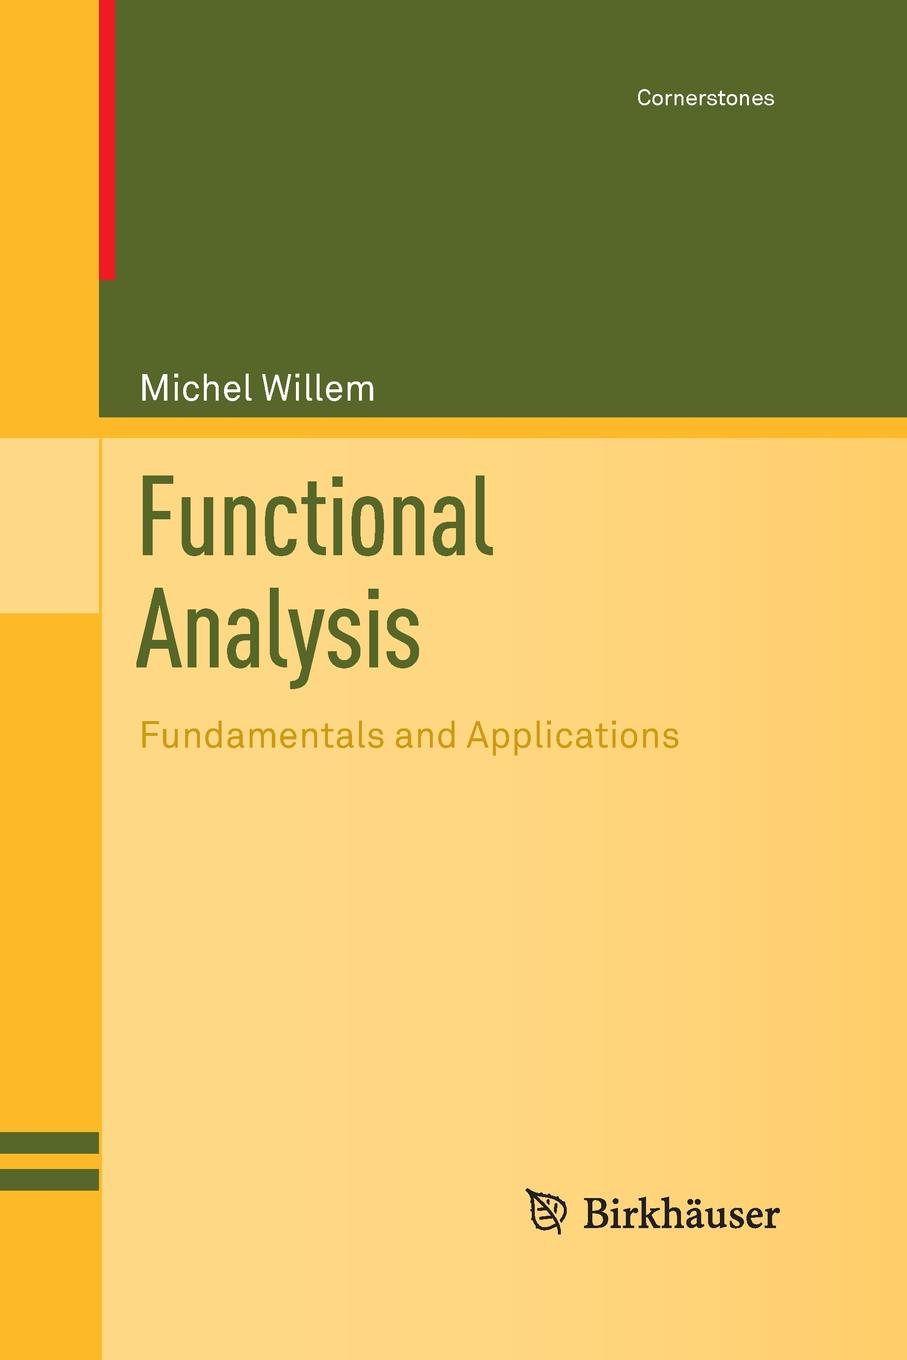 Michel Willem Functional Analysis. Fundamentals and Applications